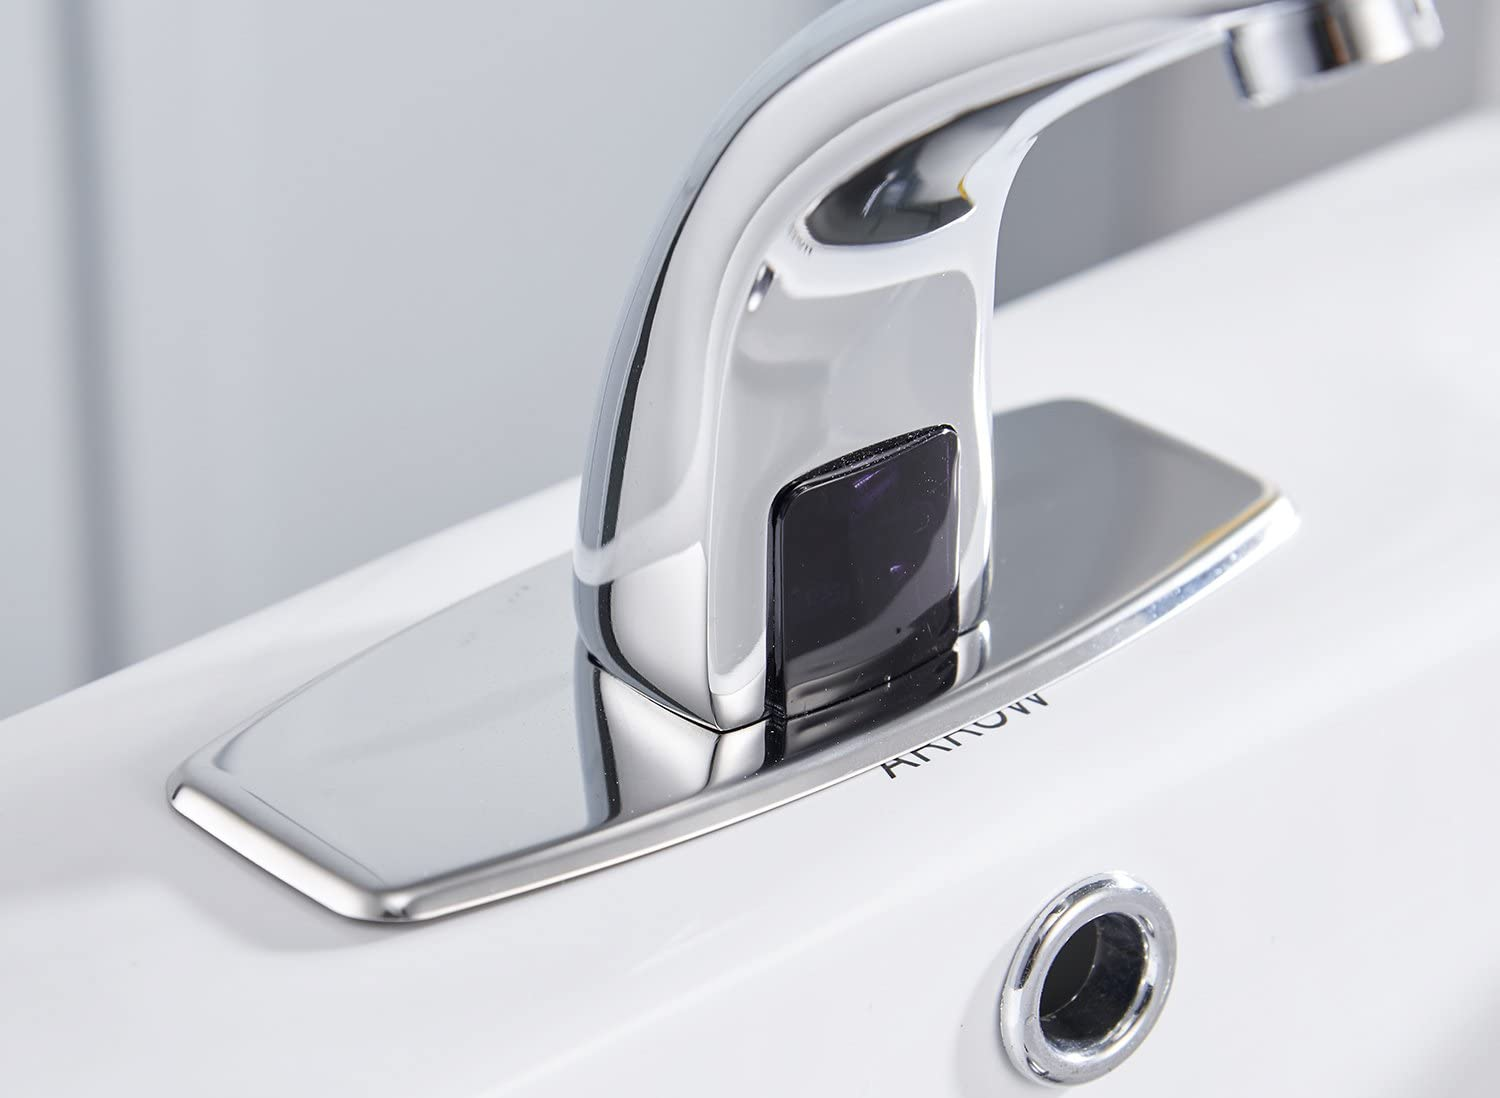 Greenspring Bathroom Faucet Automatic Sensor Touchless Bathroom Sink Faucets with Hole Cover Plate Hands Free Chrome Vanity Faucets Commercial - -